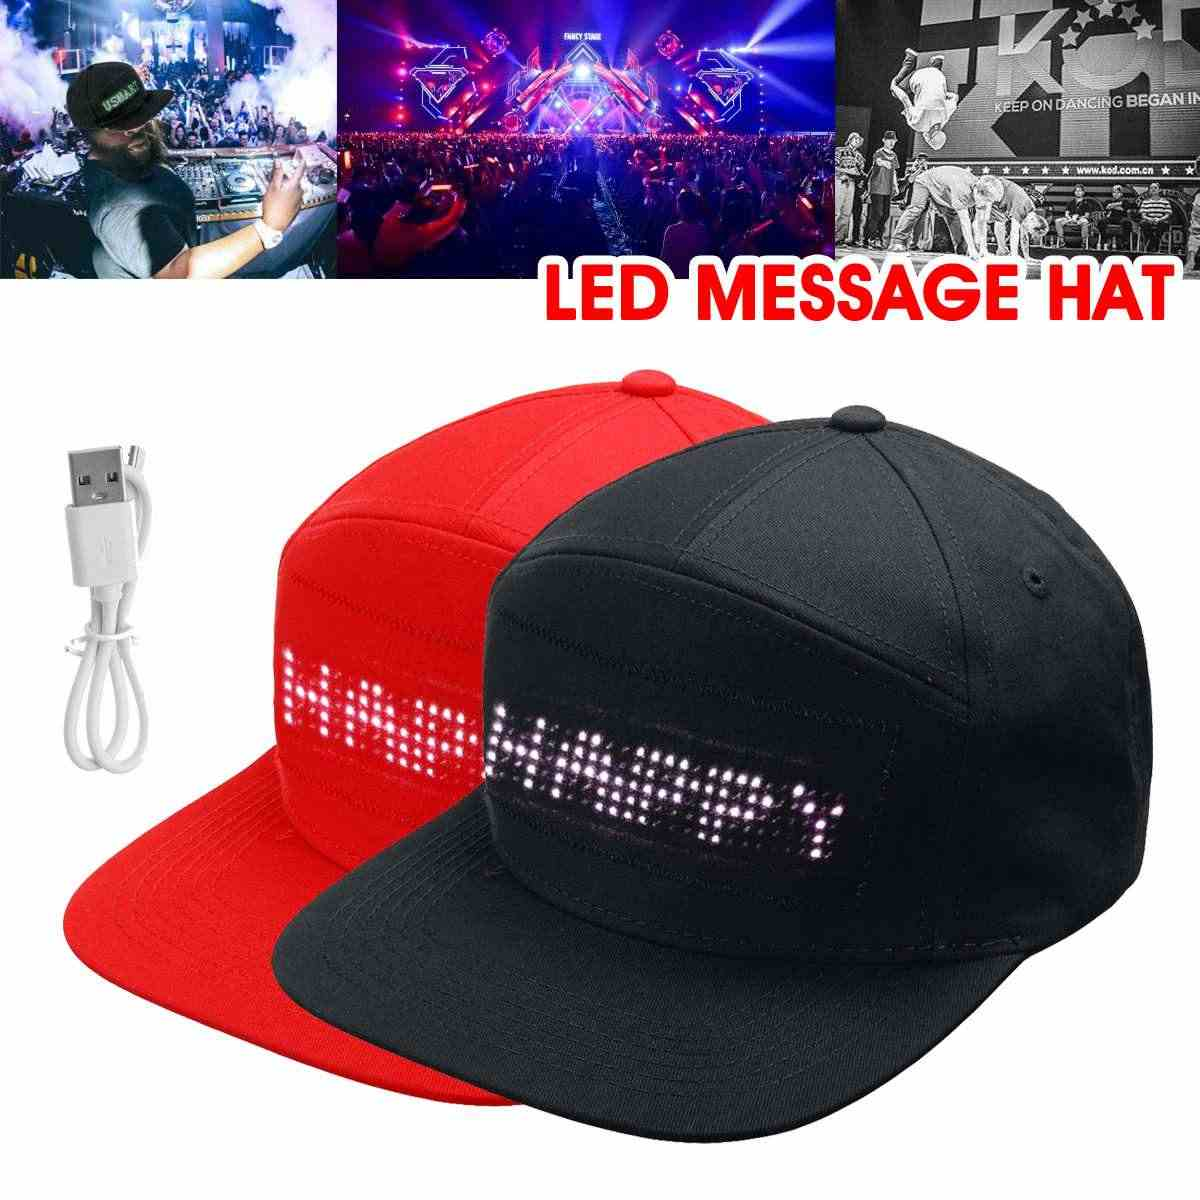 Lesov Red/Black Festival Party Stage Performance LED Scrolling Message Hat Display Board Baseball Parade Golf Fish Hip-pop Cap